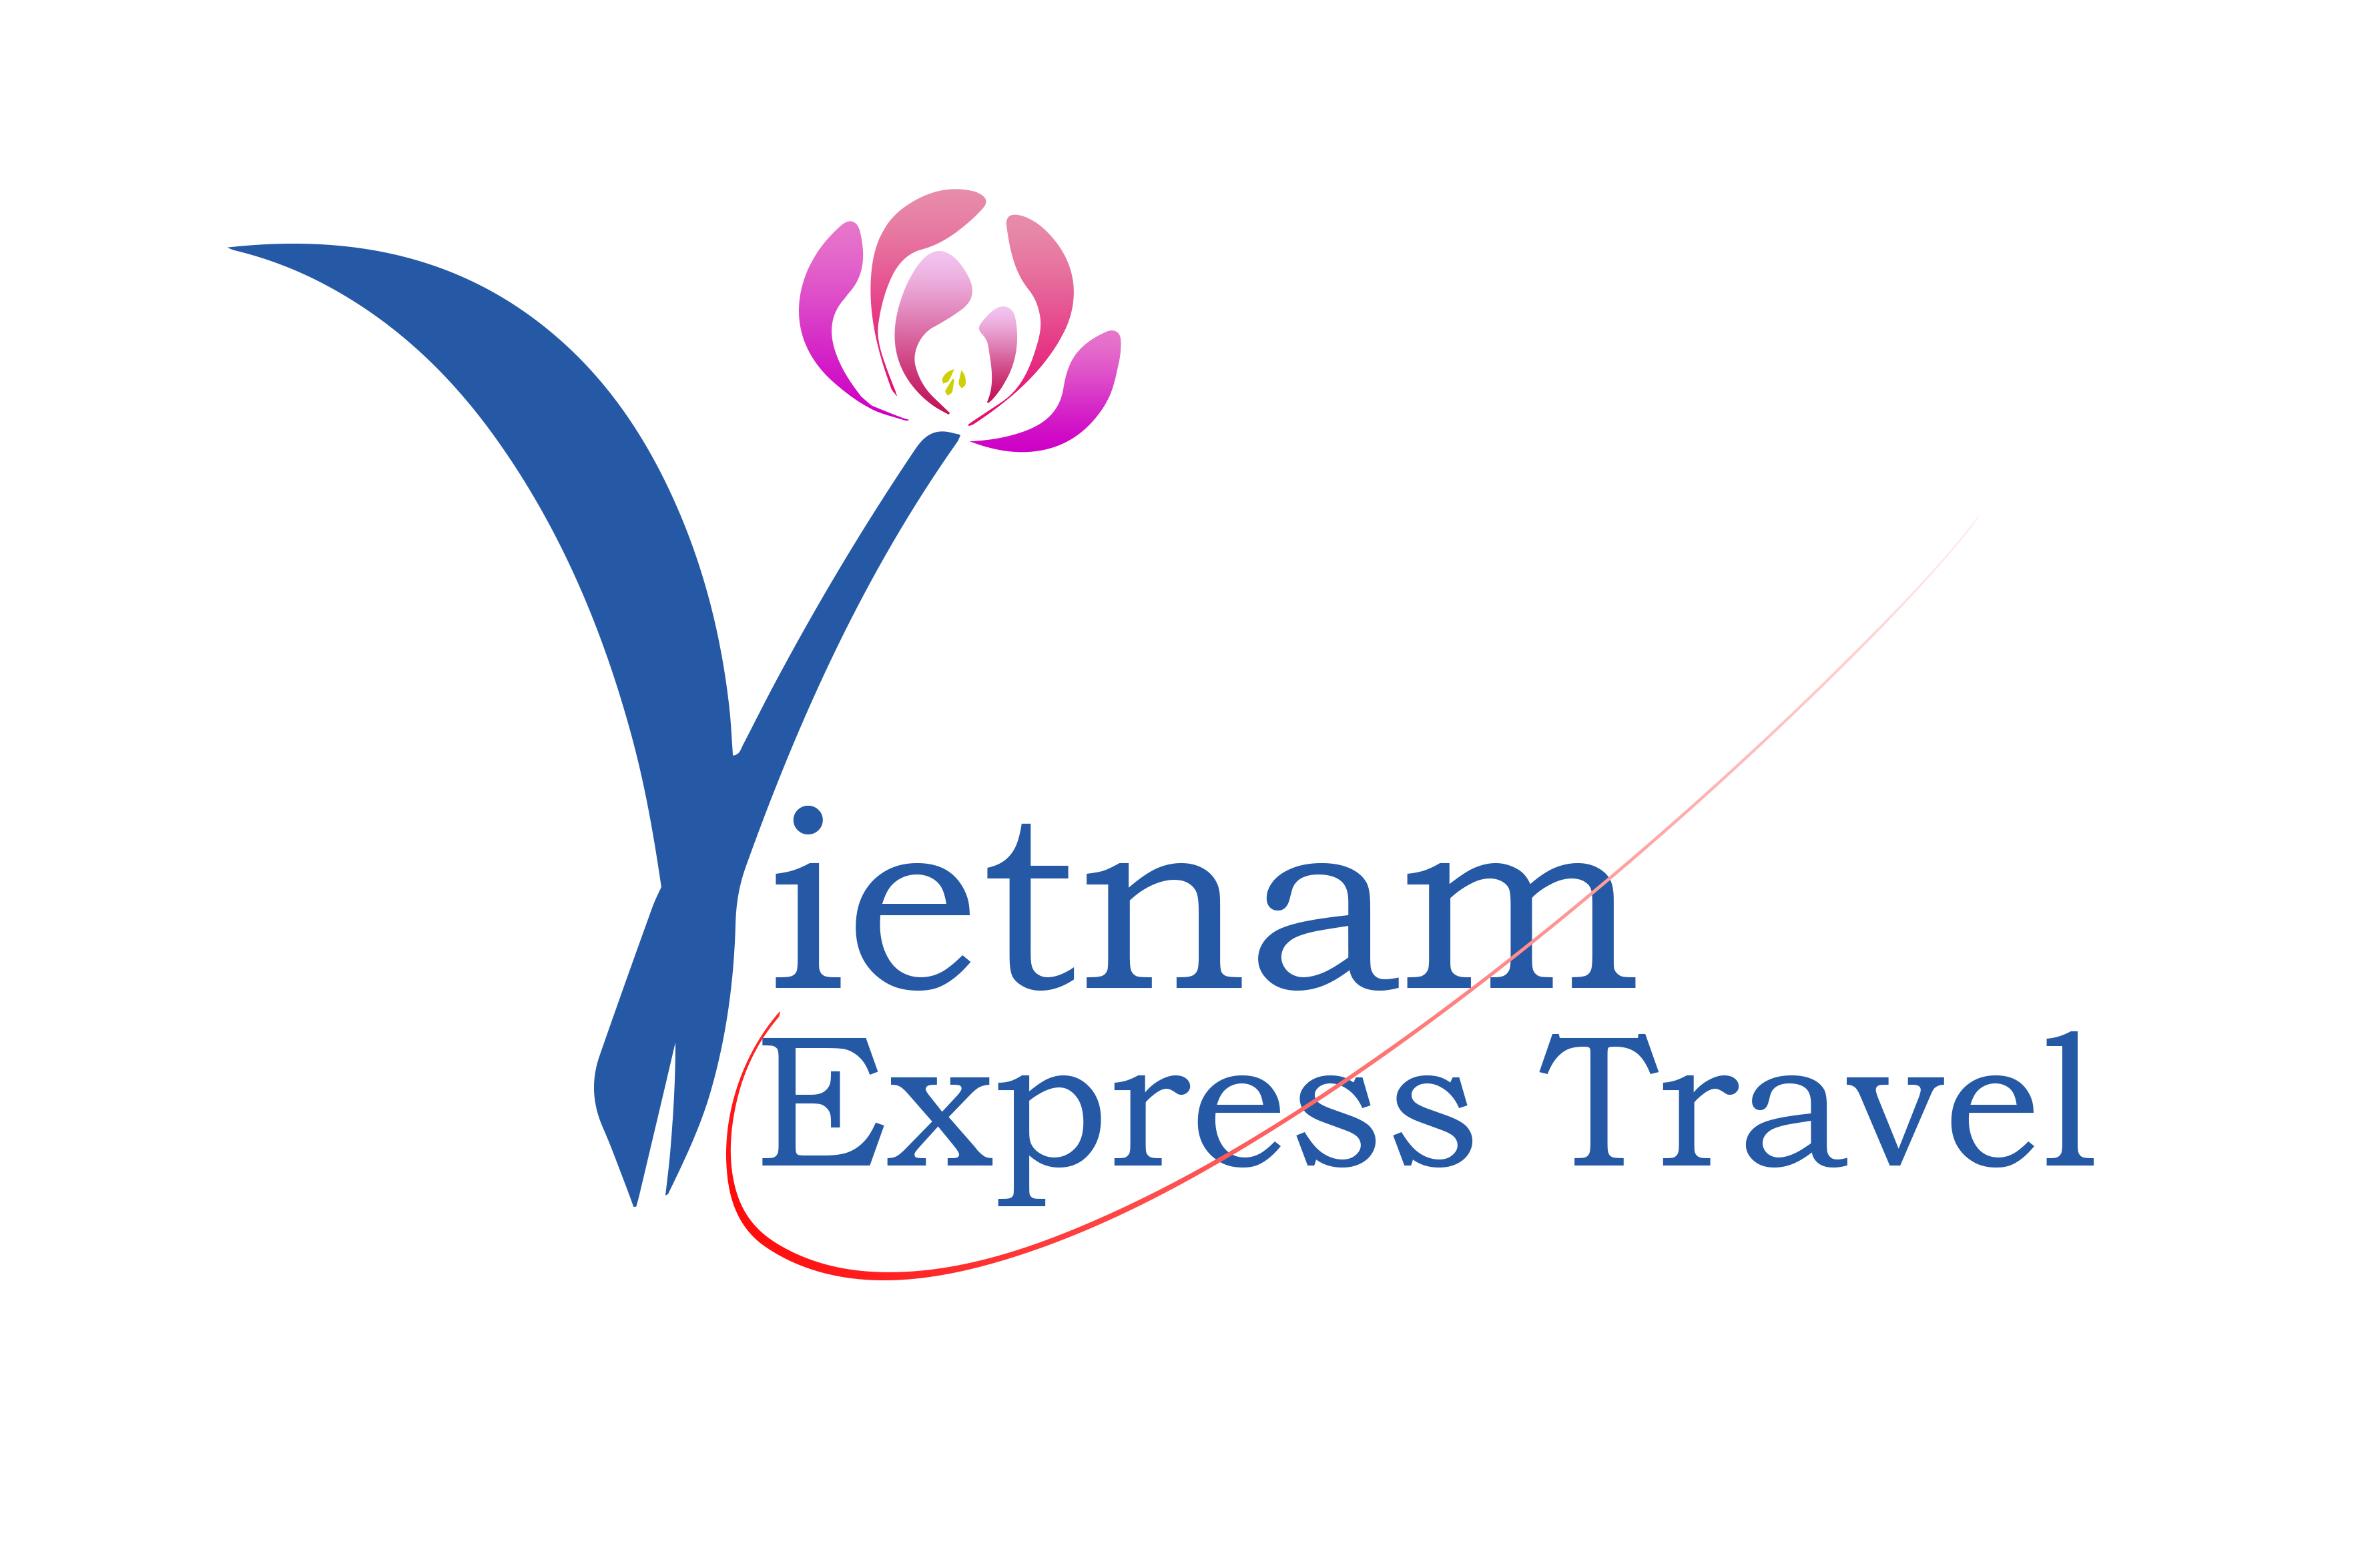 Vietnam Express Travel - Private Tour Operator in Vietnam